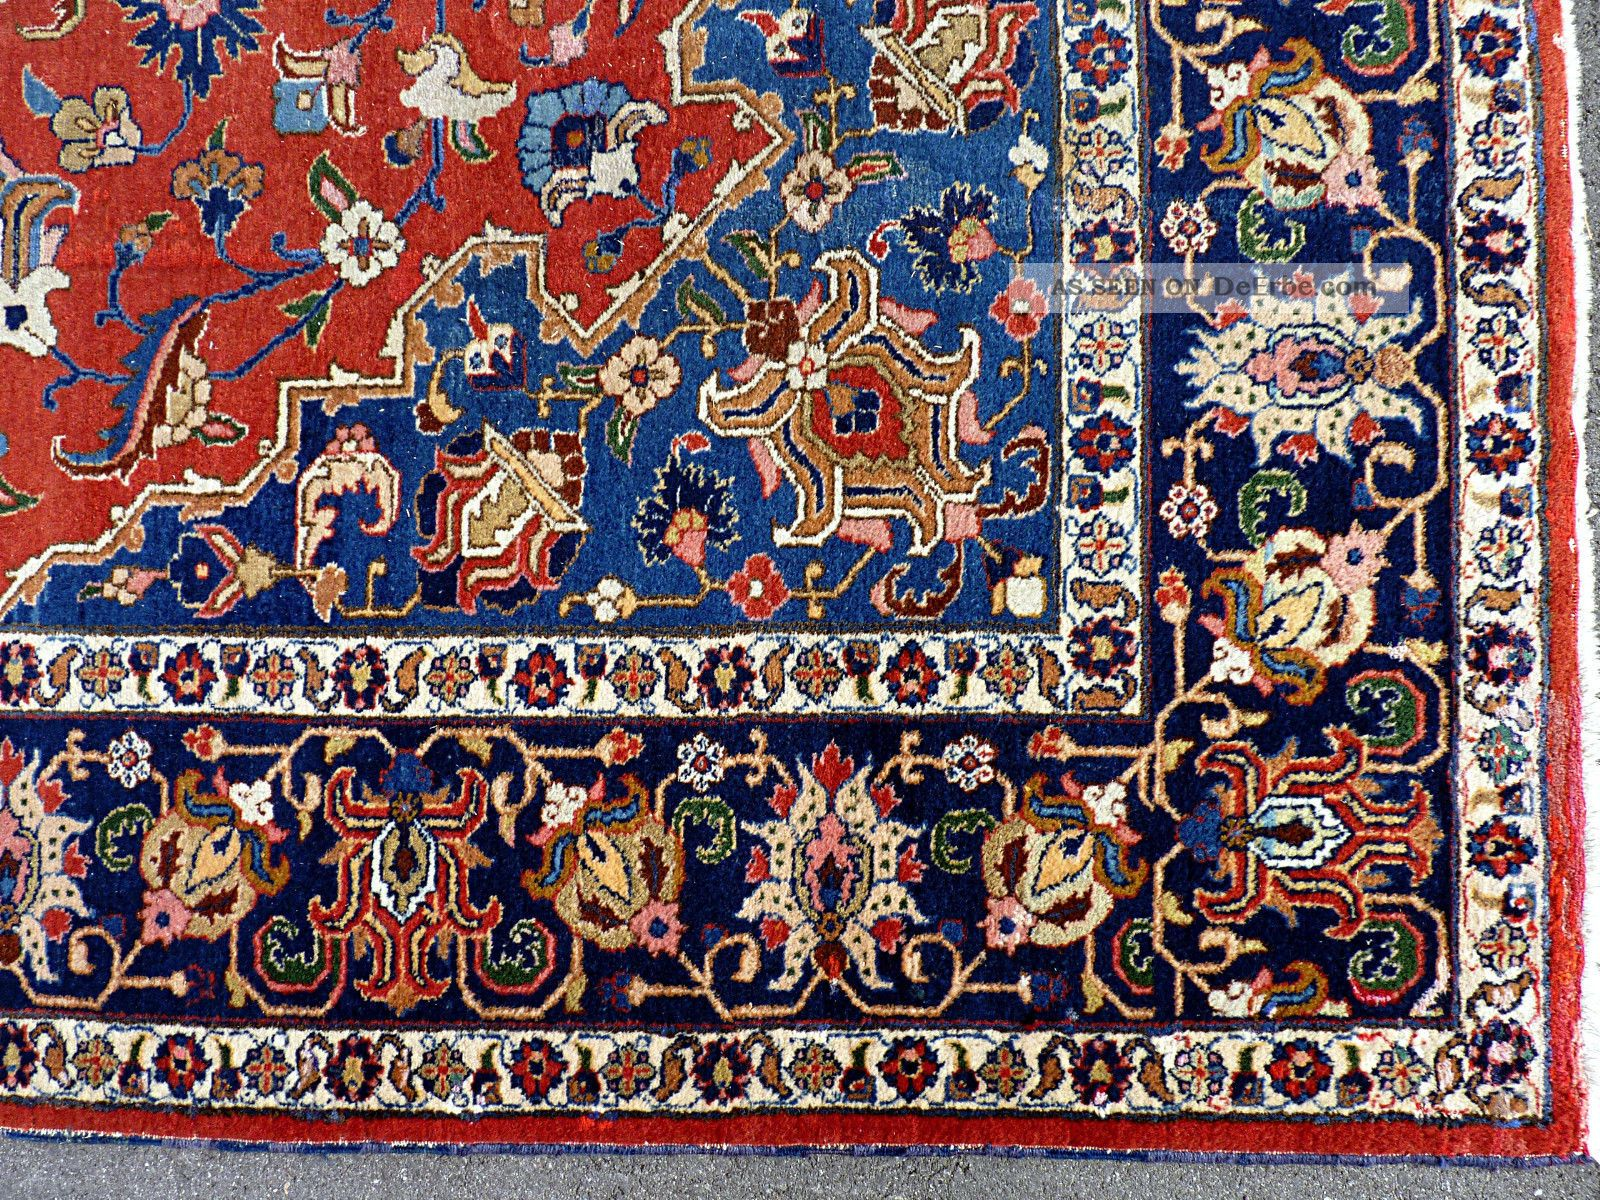 orient teppich perserteppich oriental rug tapis persan ca 370x270 12 2 39 x8 8. Black Bedroom Furniture Sets. Home Design Ideas